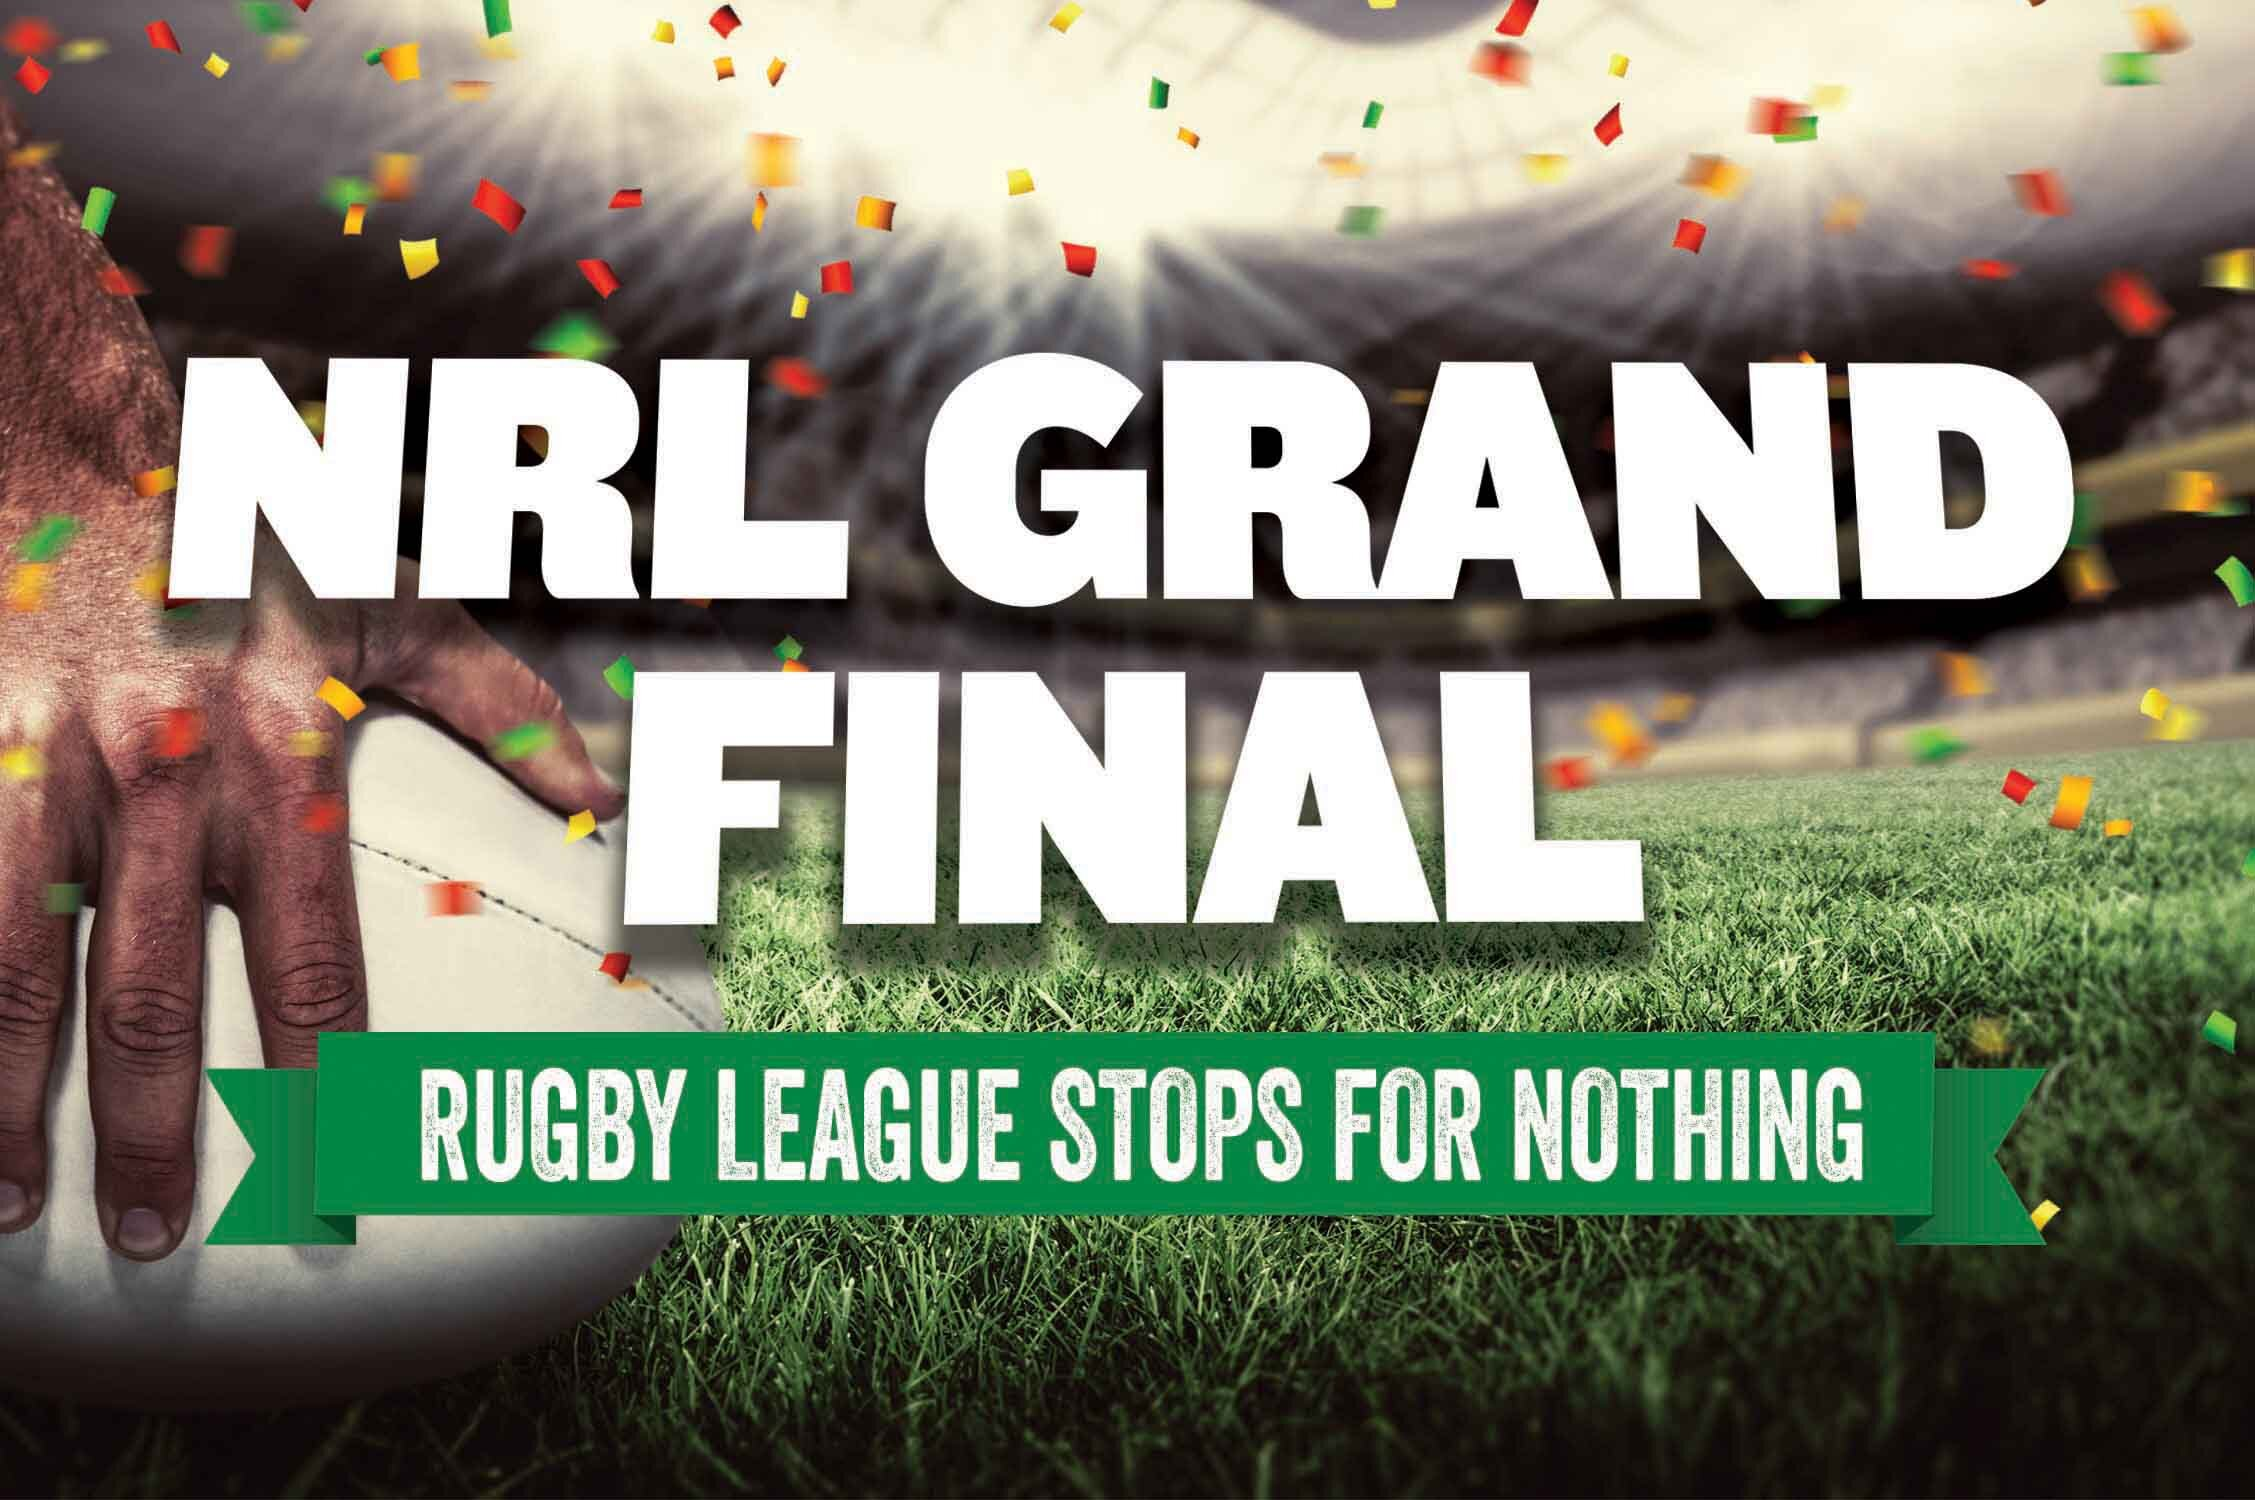 Nrl Grand Final 2020 Better At The Pub